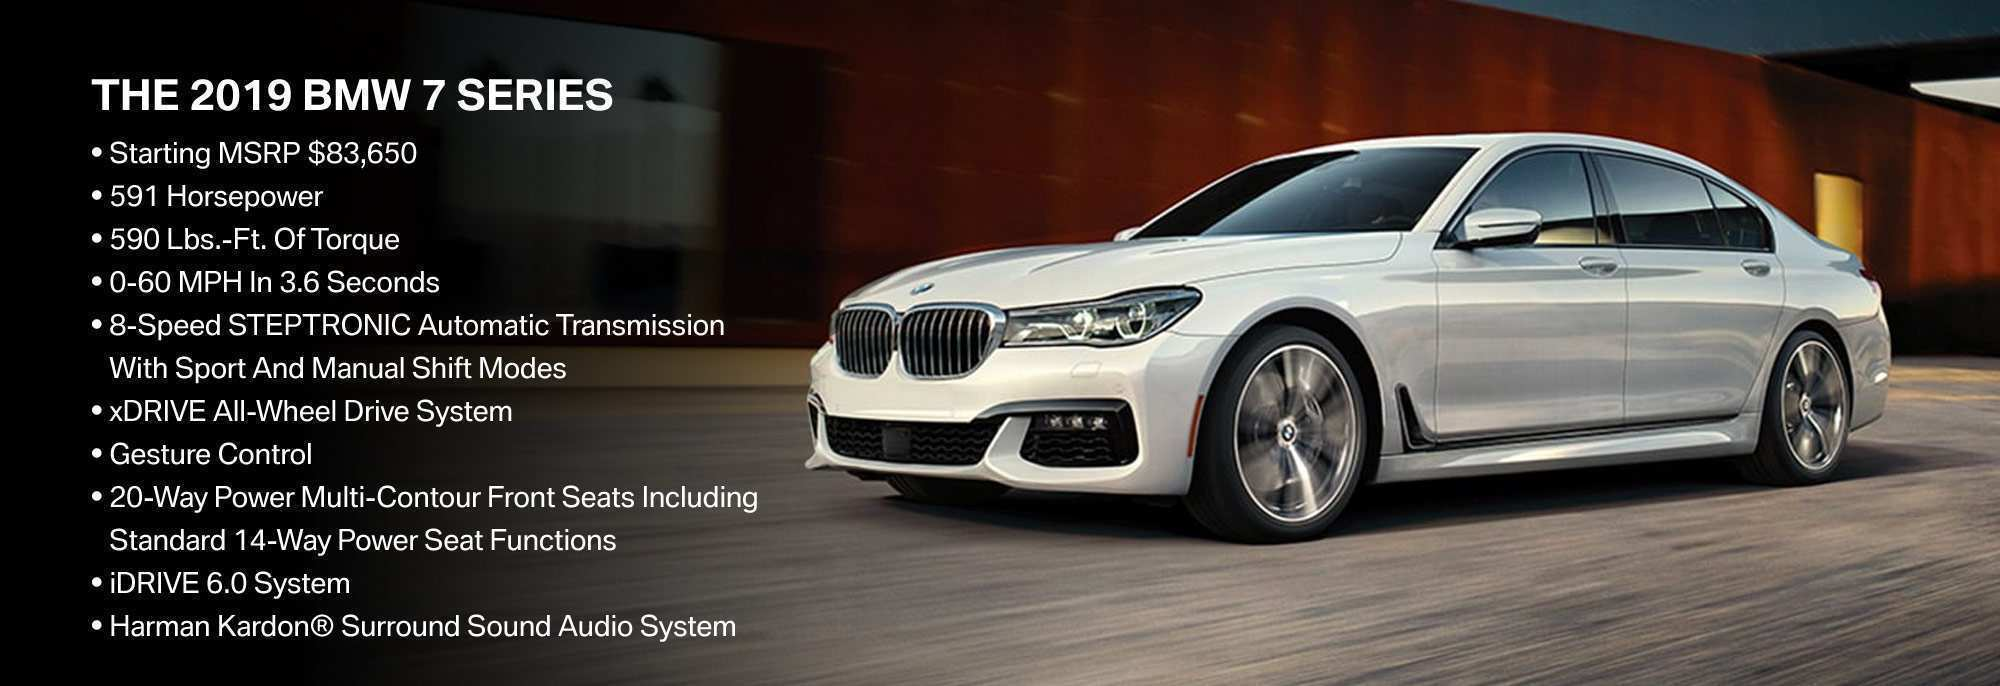 67 New 2019 BMW 7 Series Perfection New New Review